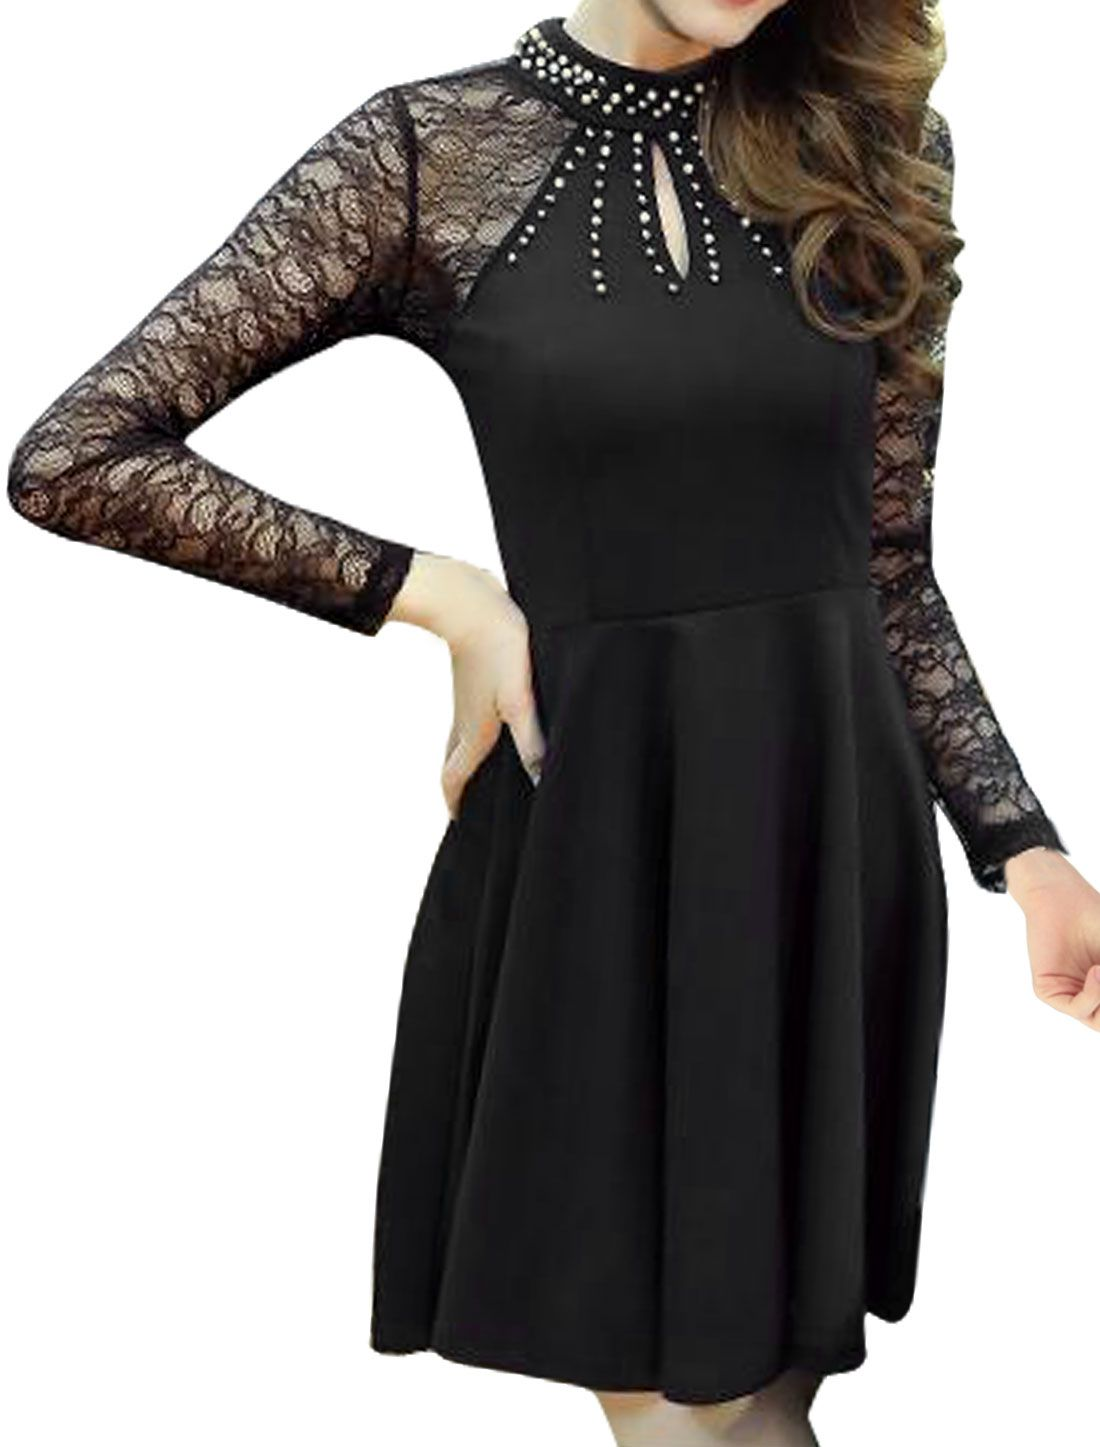 Allegra K Women's Beaded Cut Out Back Lace Fit and Flare Dress Black (Size S / 4)